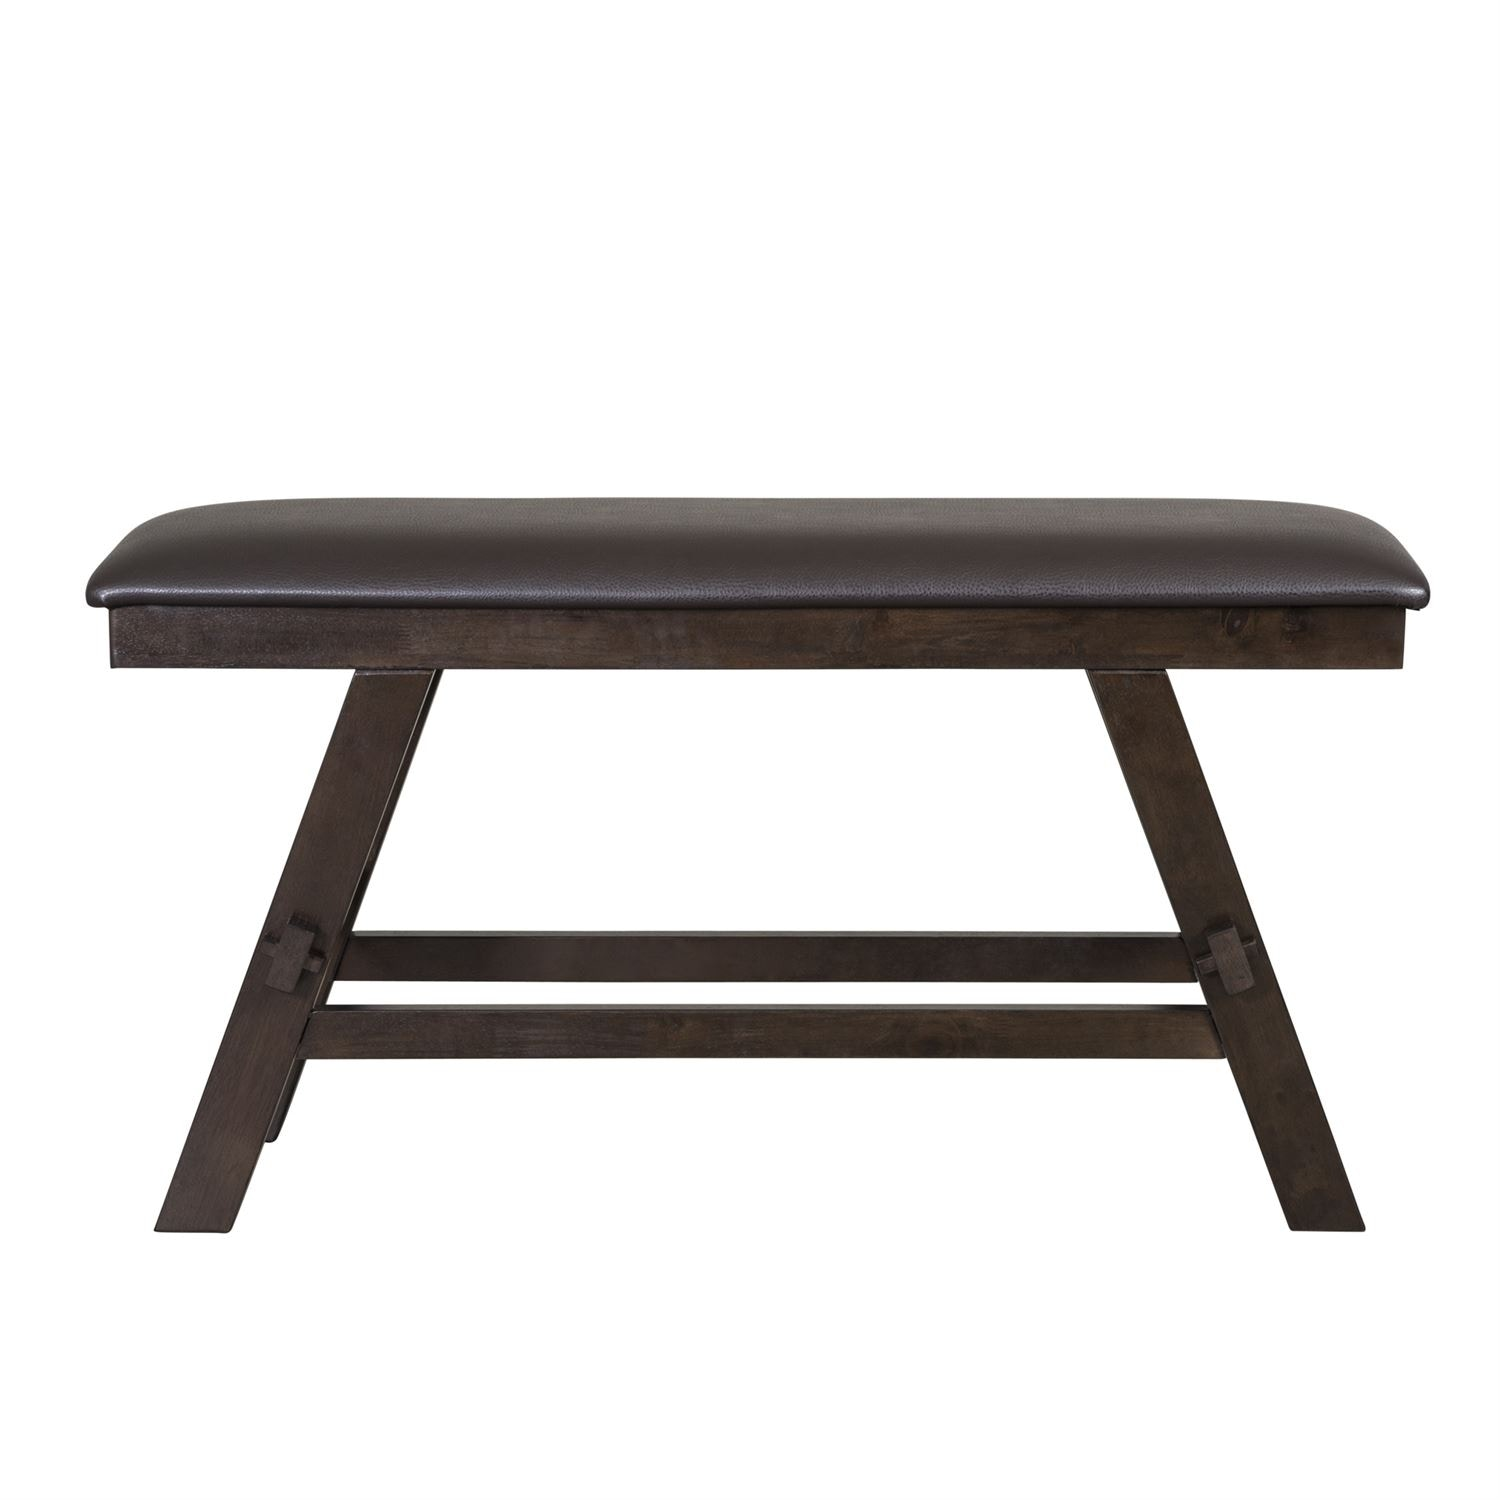 Liberty Furniture Dining Room Counter Bench (RTA) 116 B900124   Smith  Village Home Furniture   Jacobus And York, PA